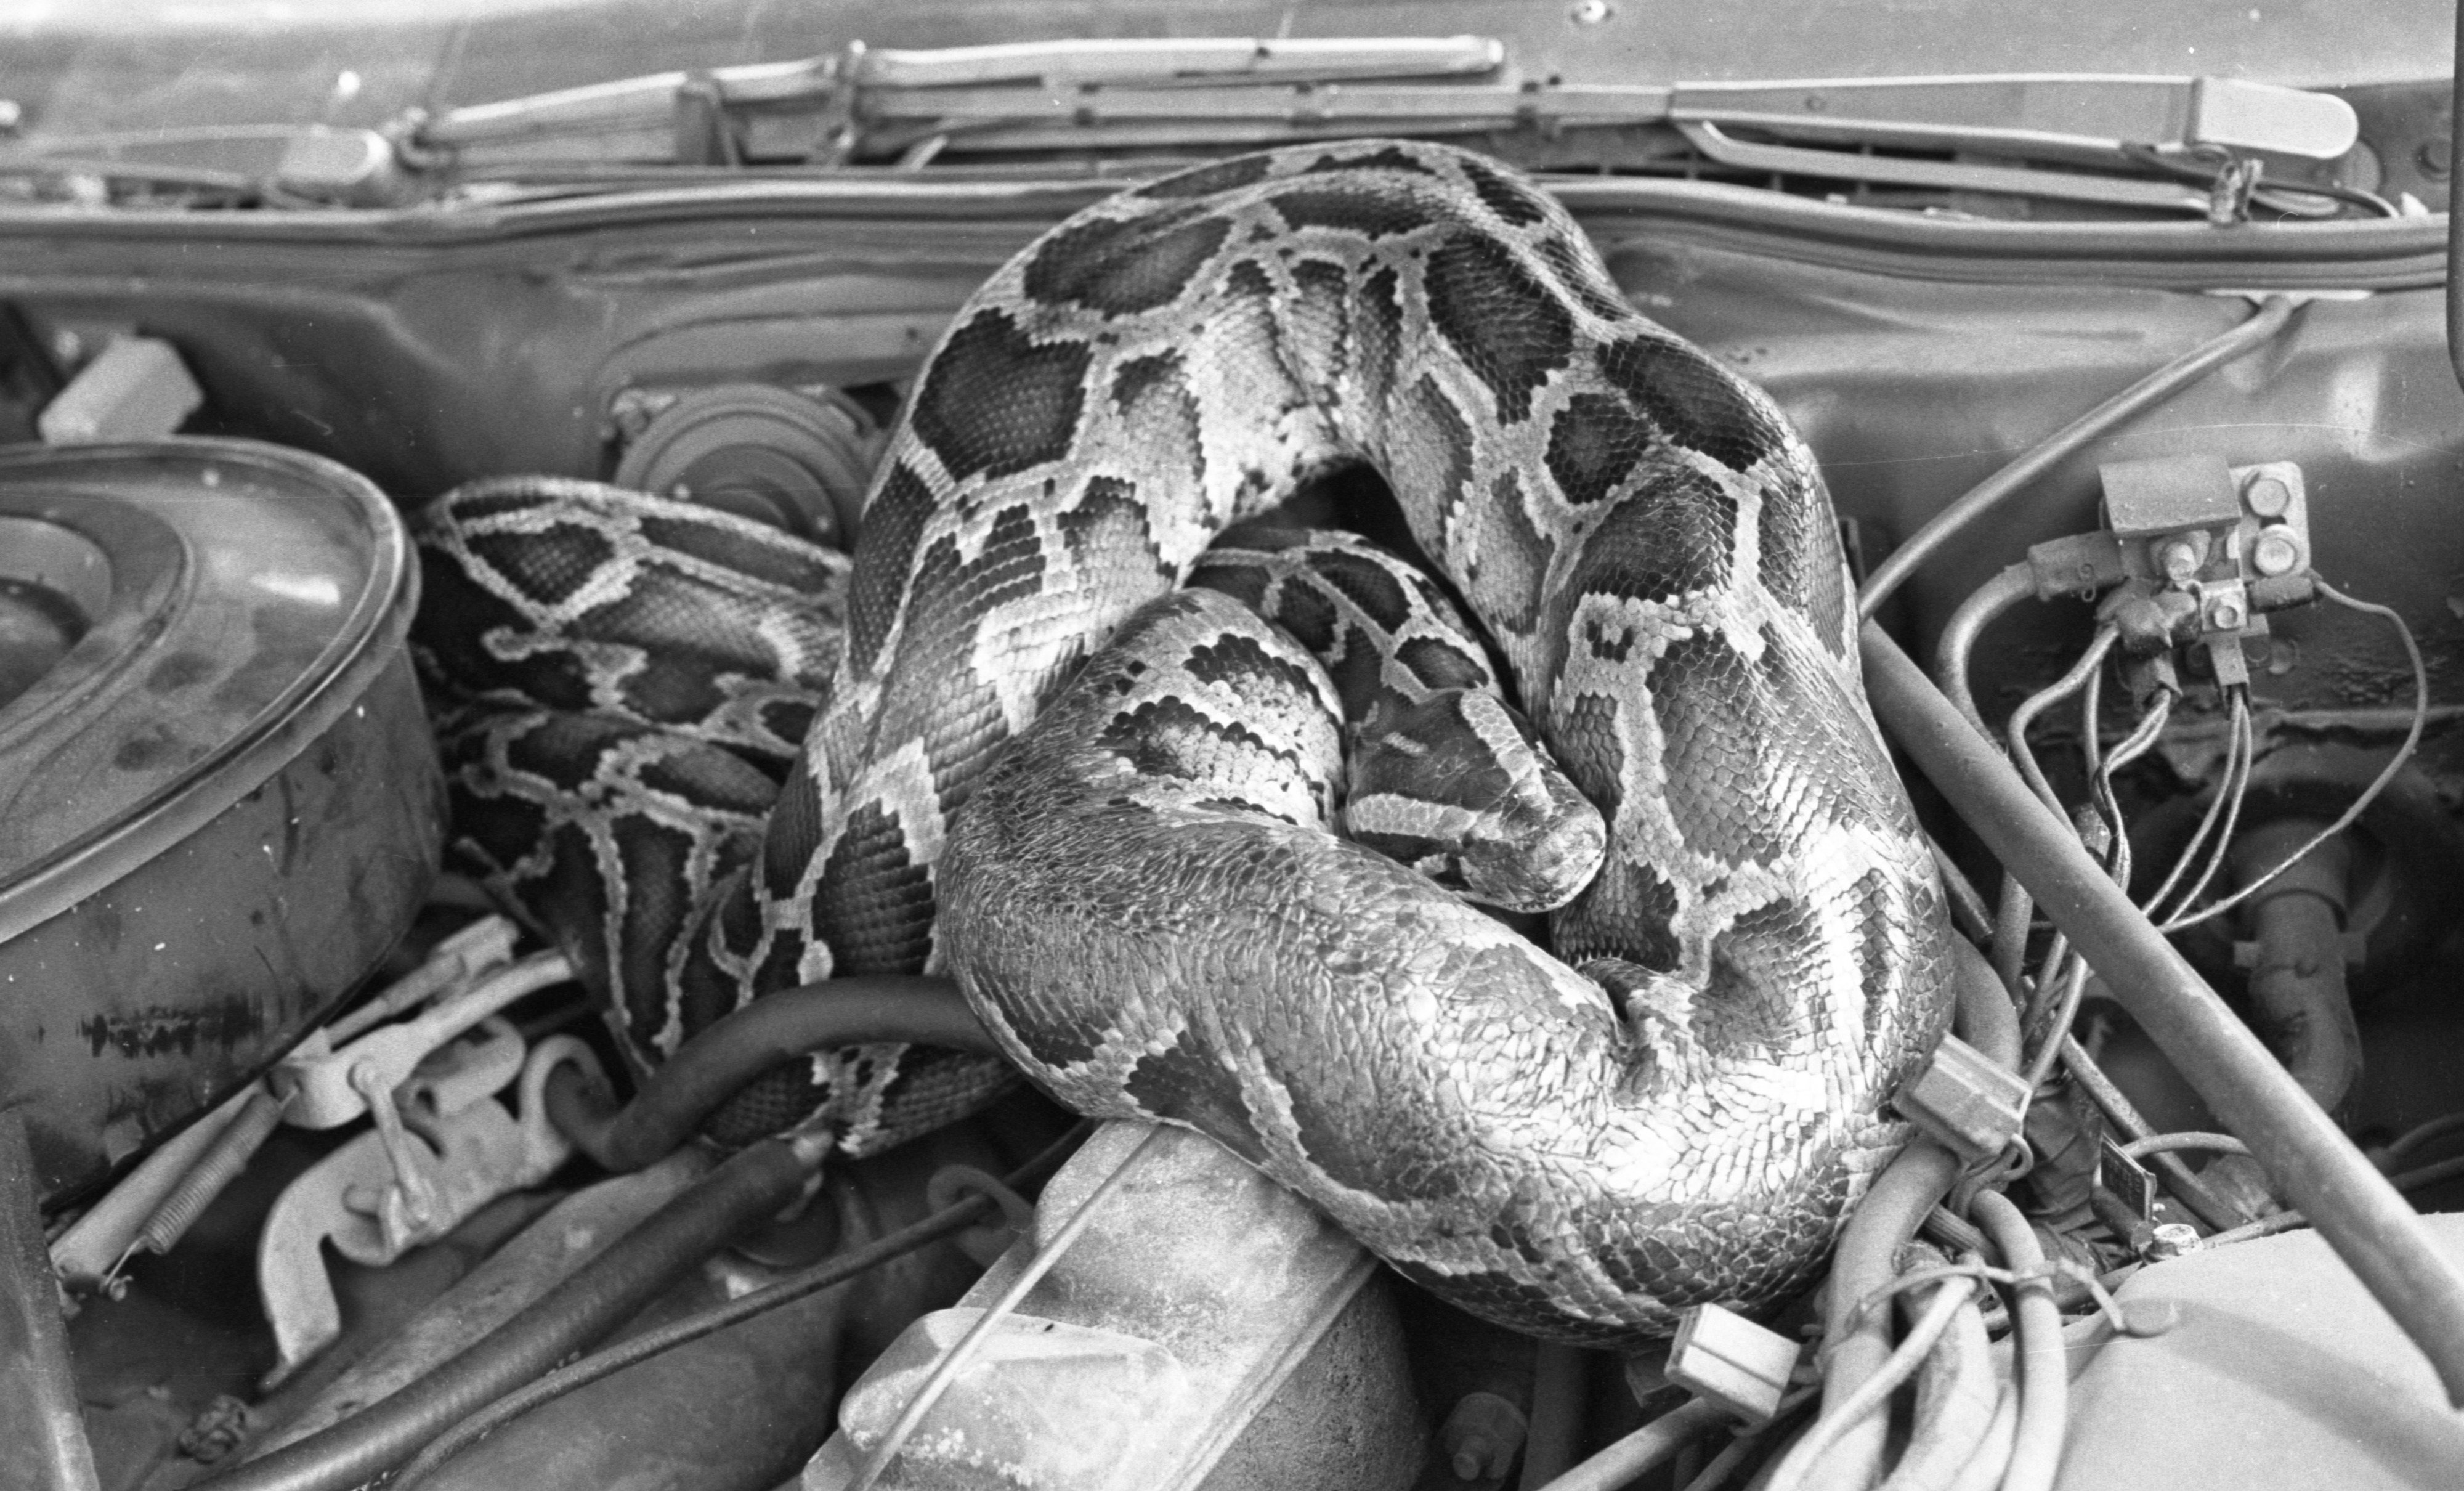 Python Found Sleeping Under The Hood Of A Car, August 1983 image